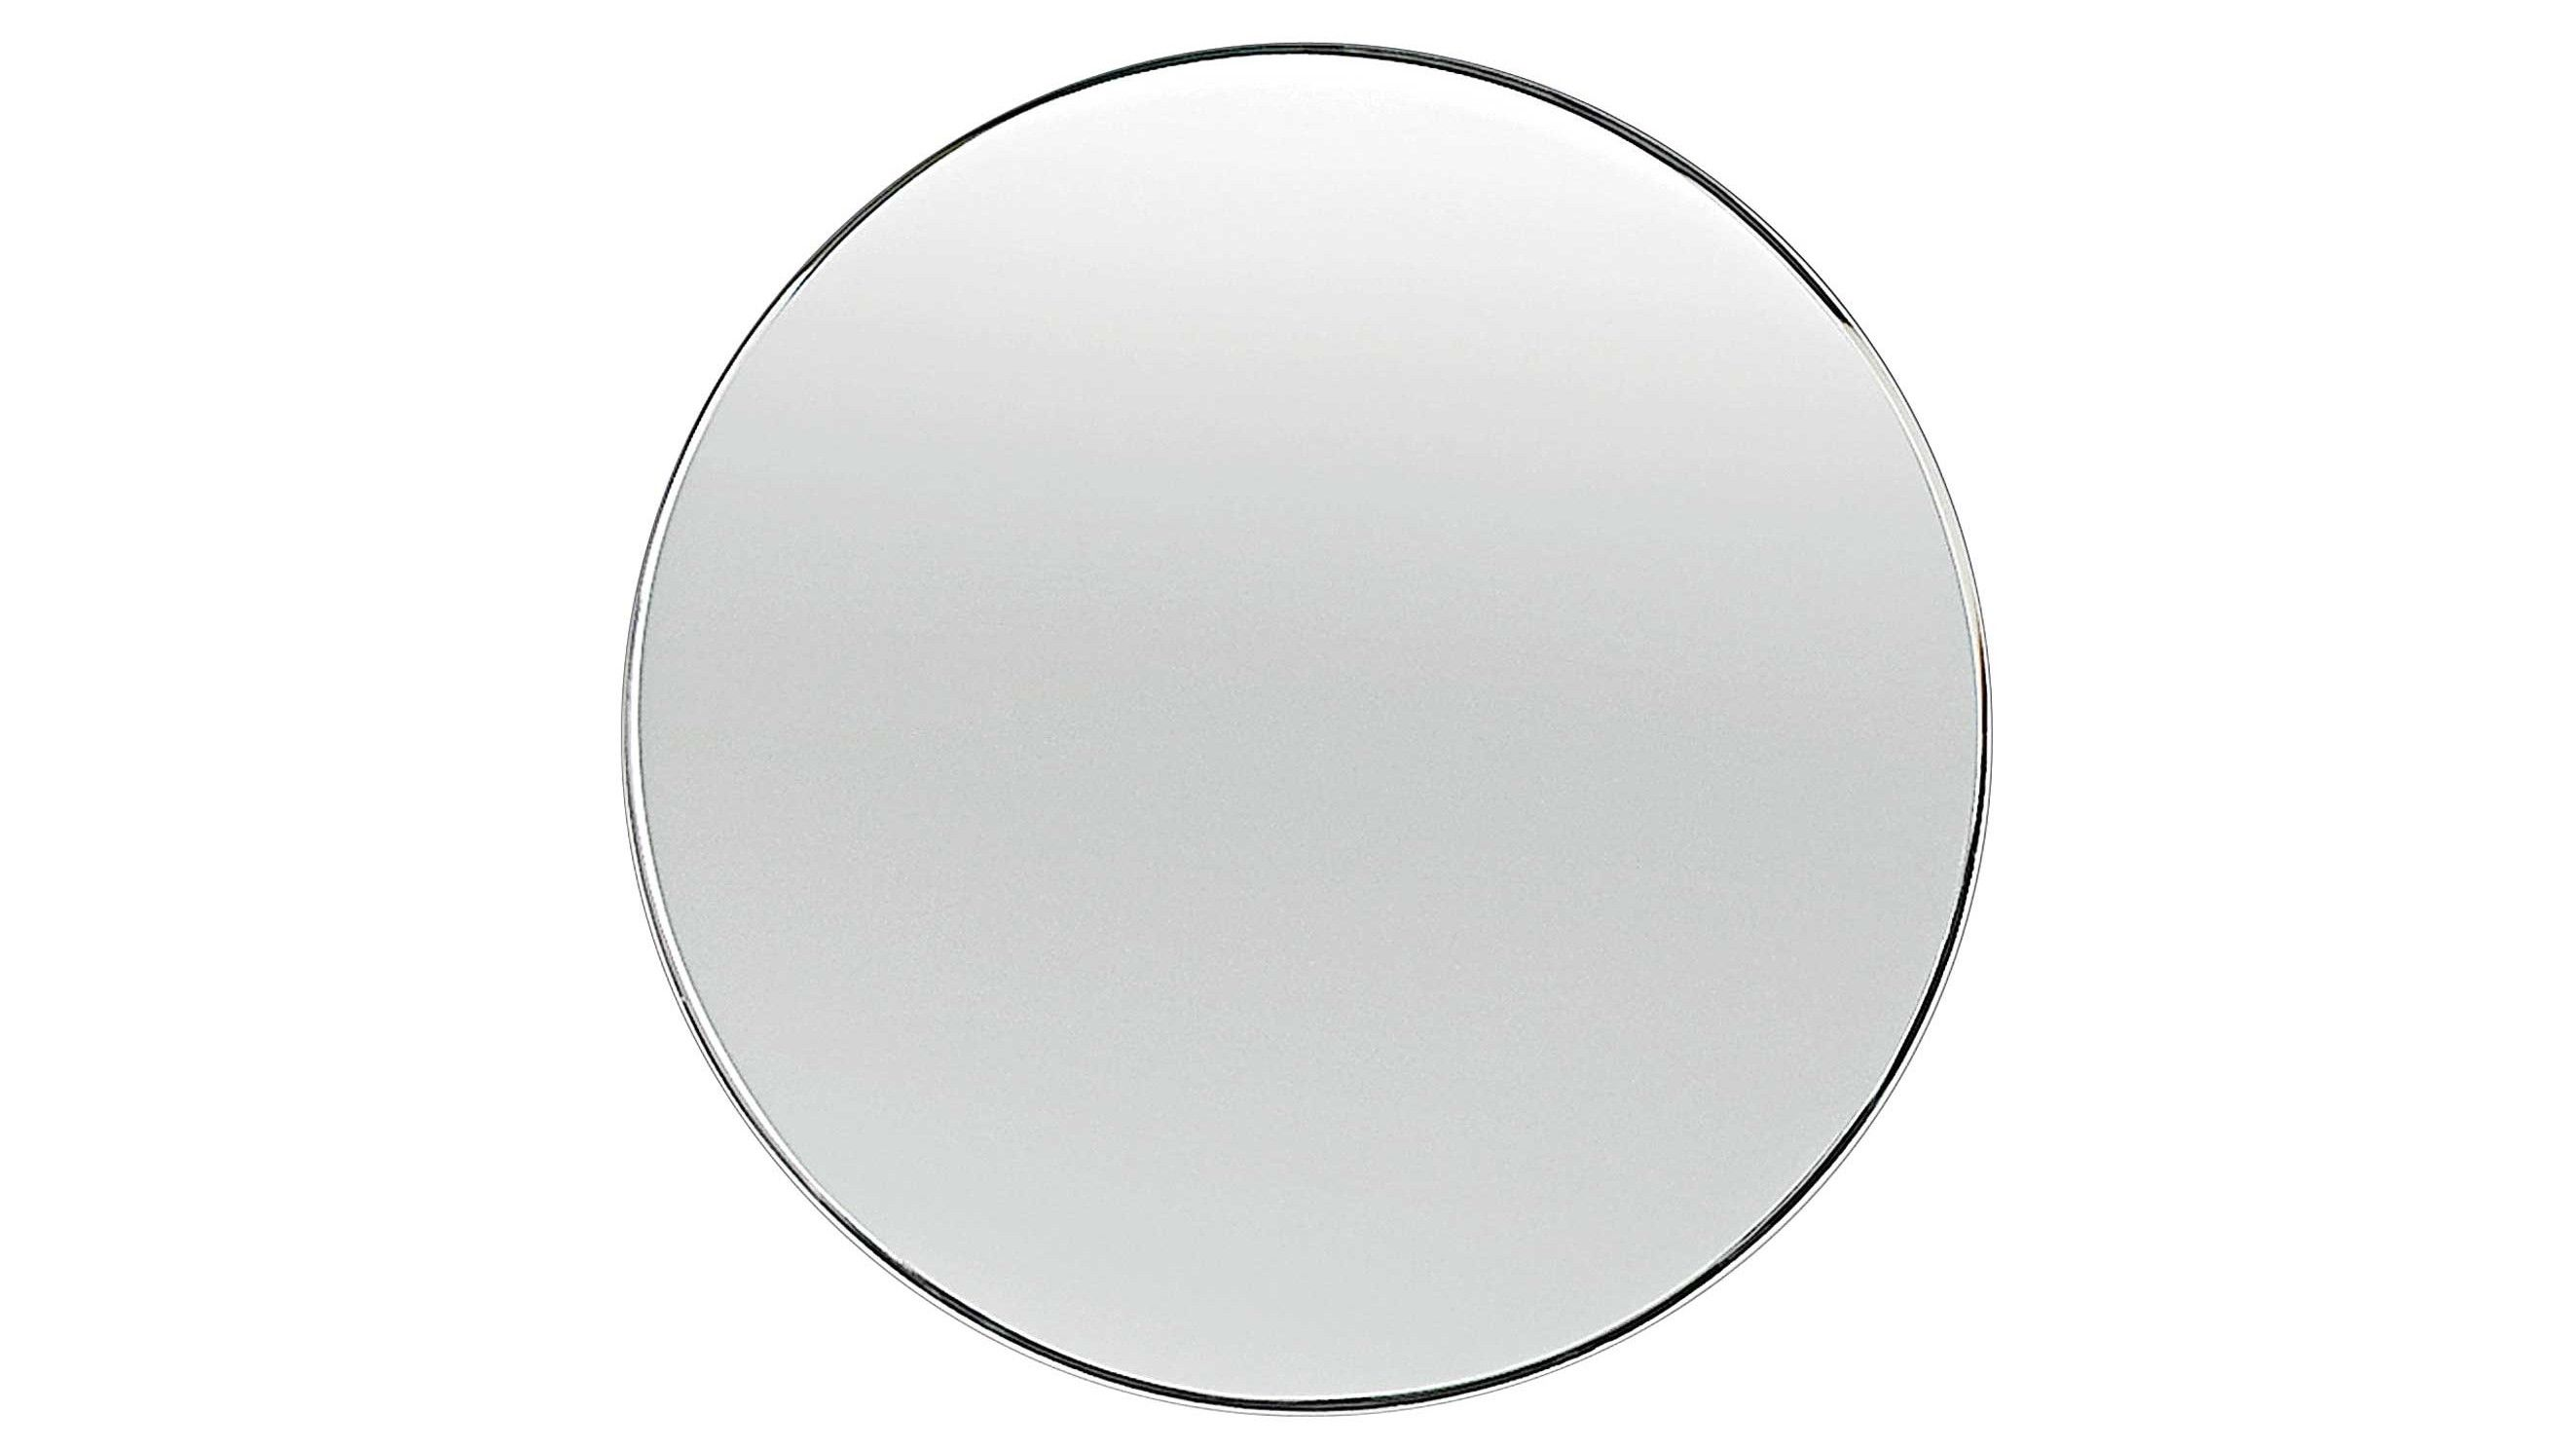 Harvey Norman - Ledin Art S2 600 Round Mirror | New House ...